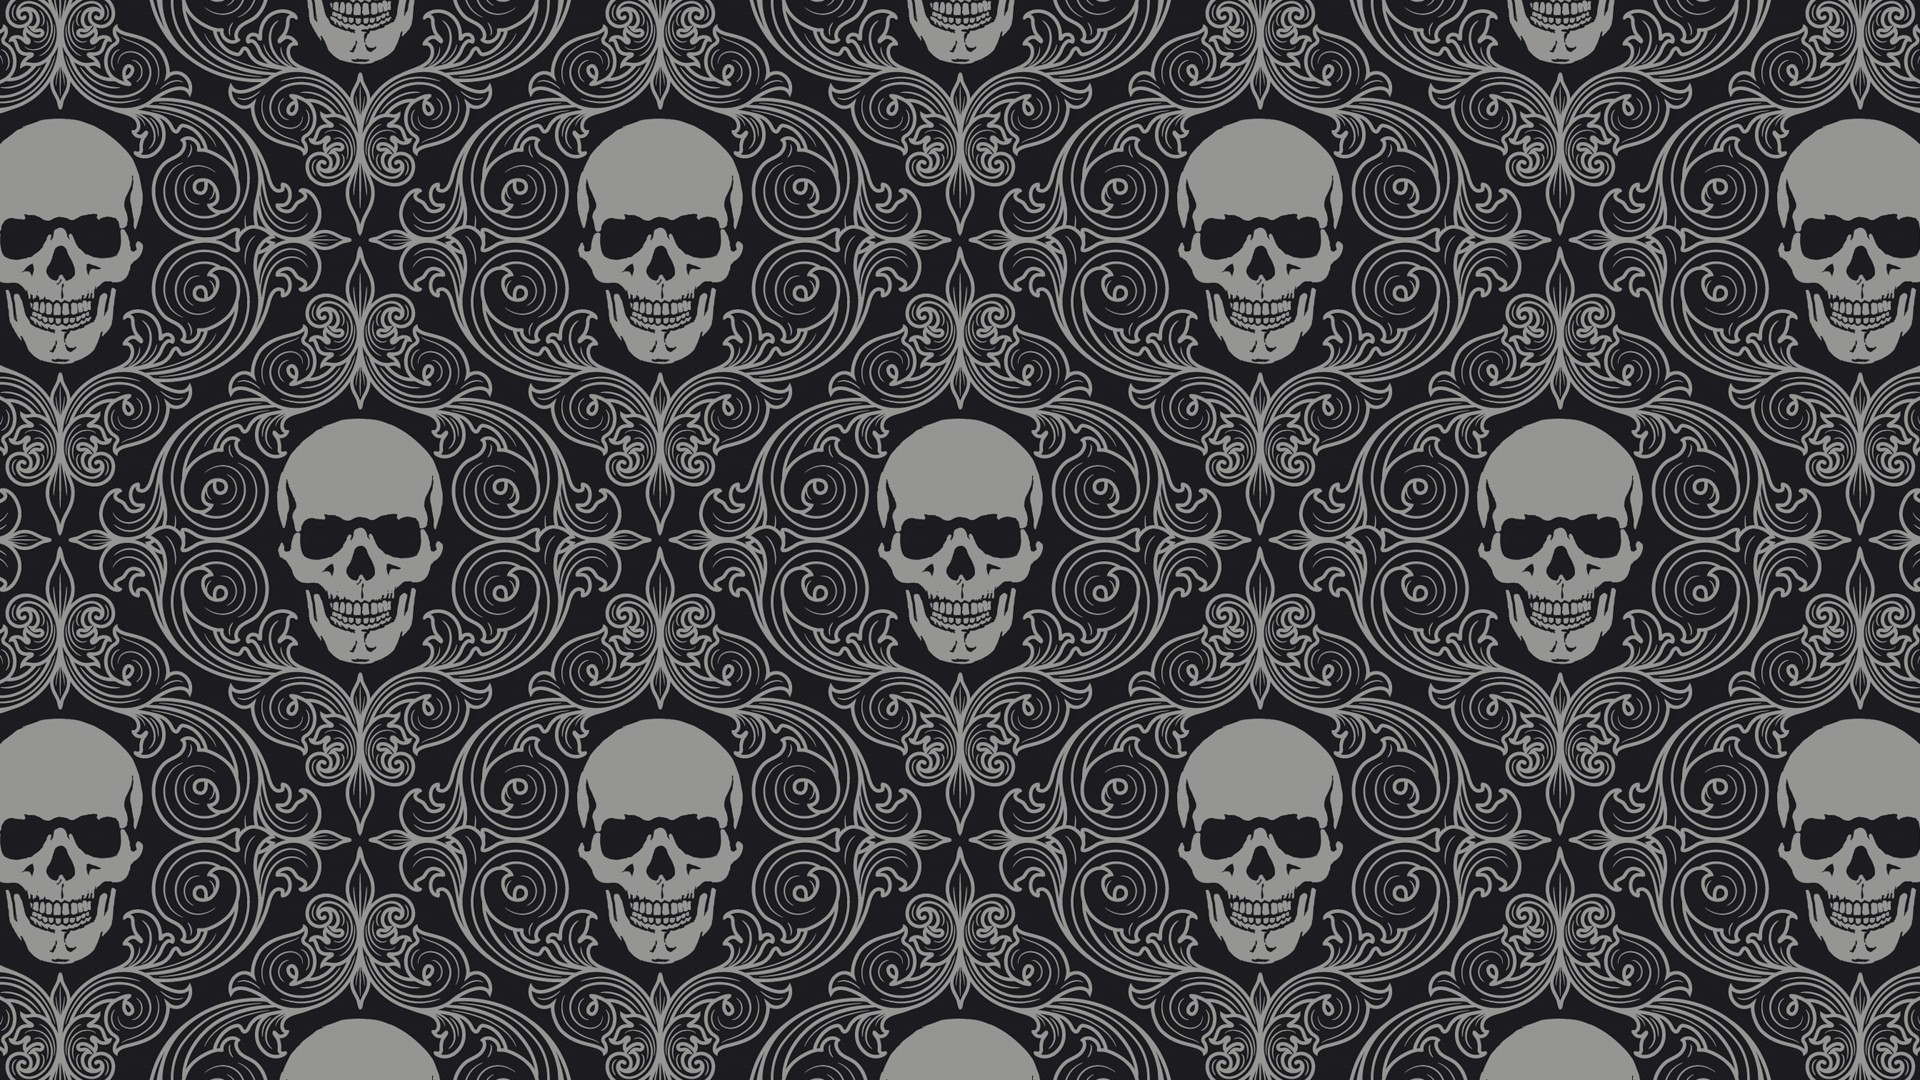 Skull Wallpaper High Quality Resolution Is Cool Wallpapers